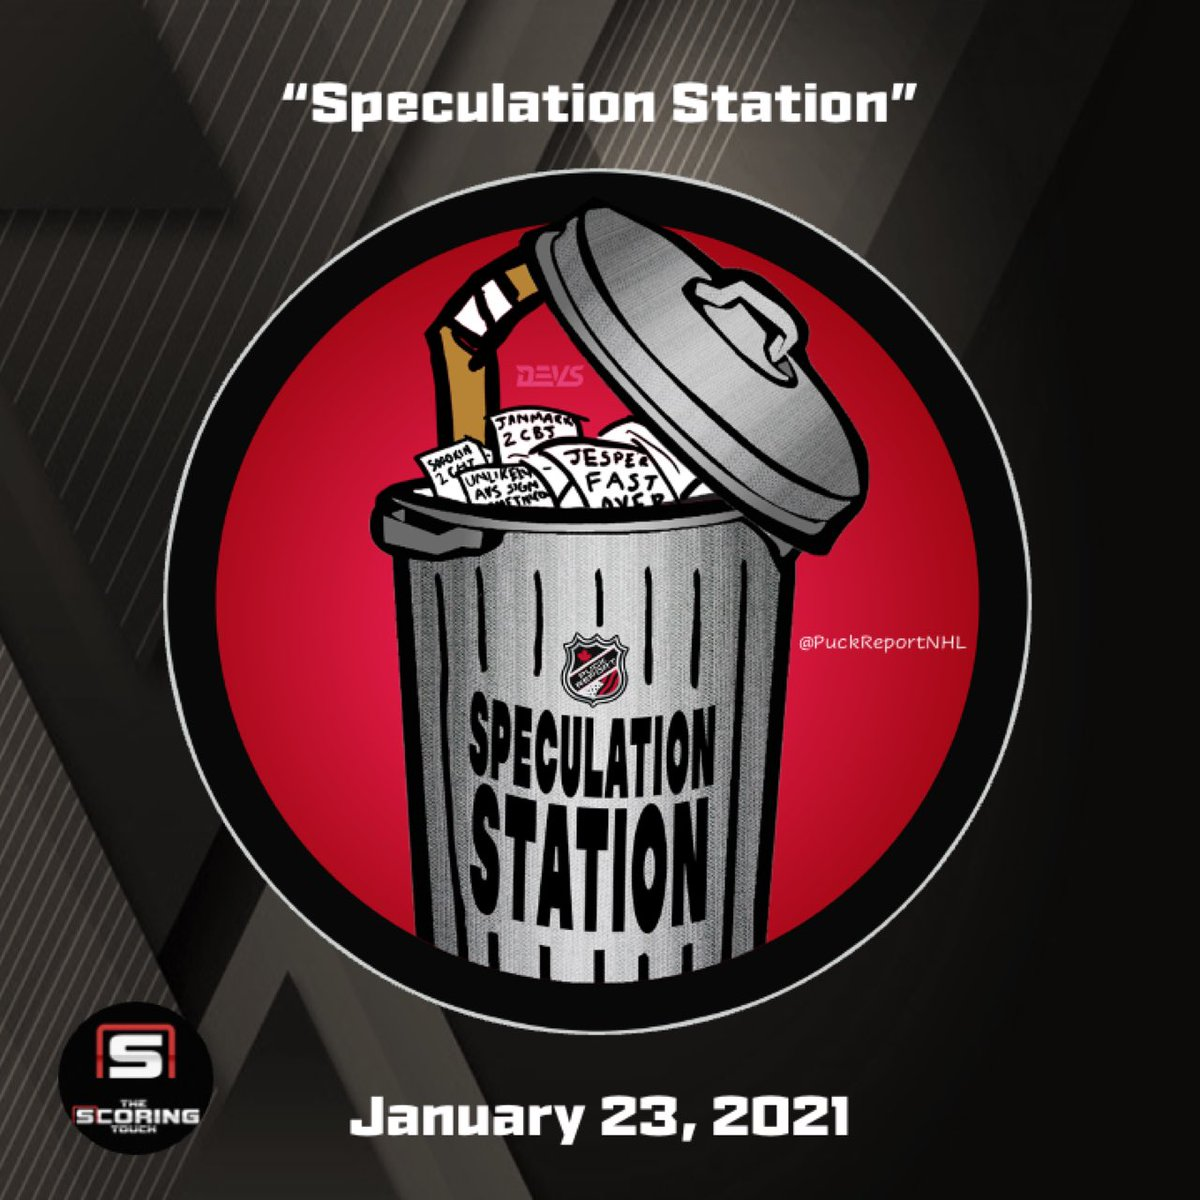 SPECULATION STATION: - Scouts at #NYR/#LetsGoPens - Update on AHL's Canadian teams - #GoBolts hope to allow fans soon - Notes on #LetsGoCanes situation  👇   #FlaPanthers #GoKraken #MNWild #FlyTogether #LGRW #SJSharks #AnytimeAnywhere #VegasBorn #CofRed